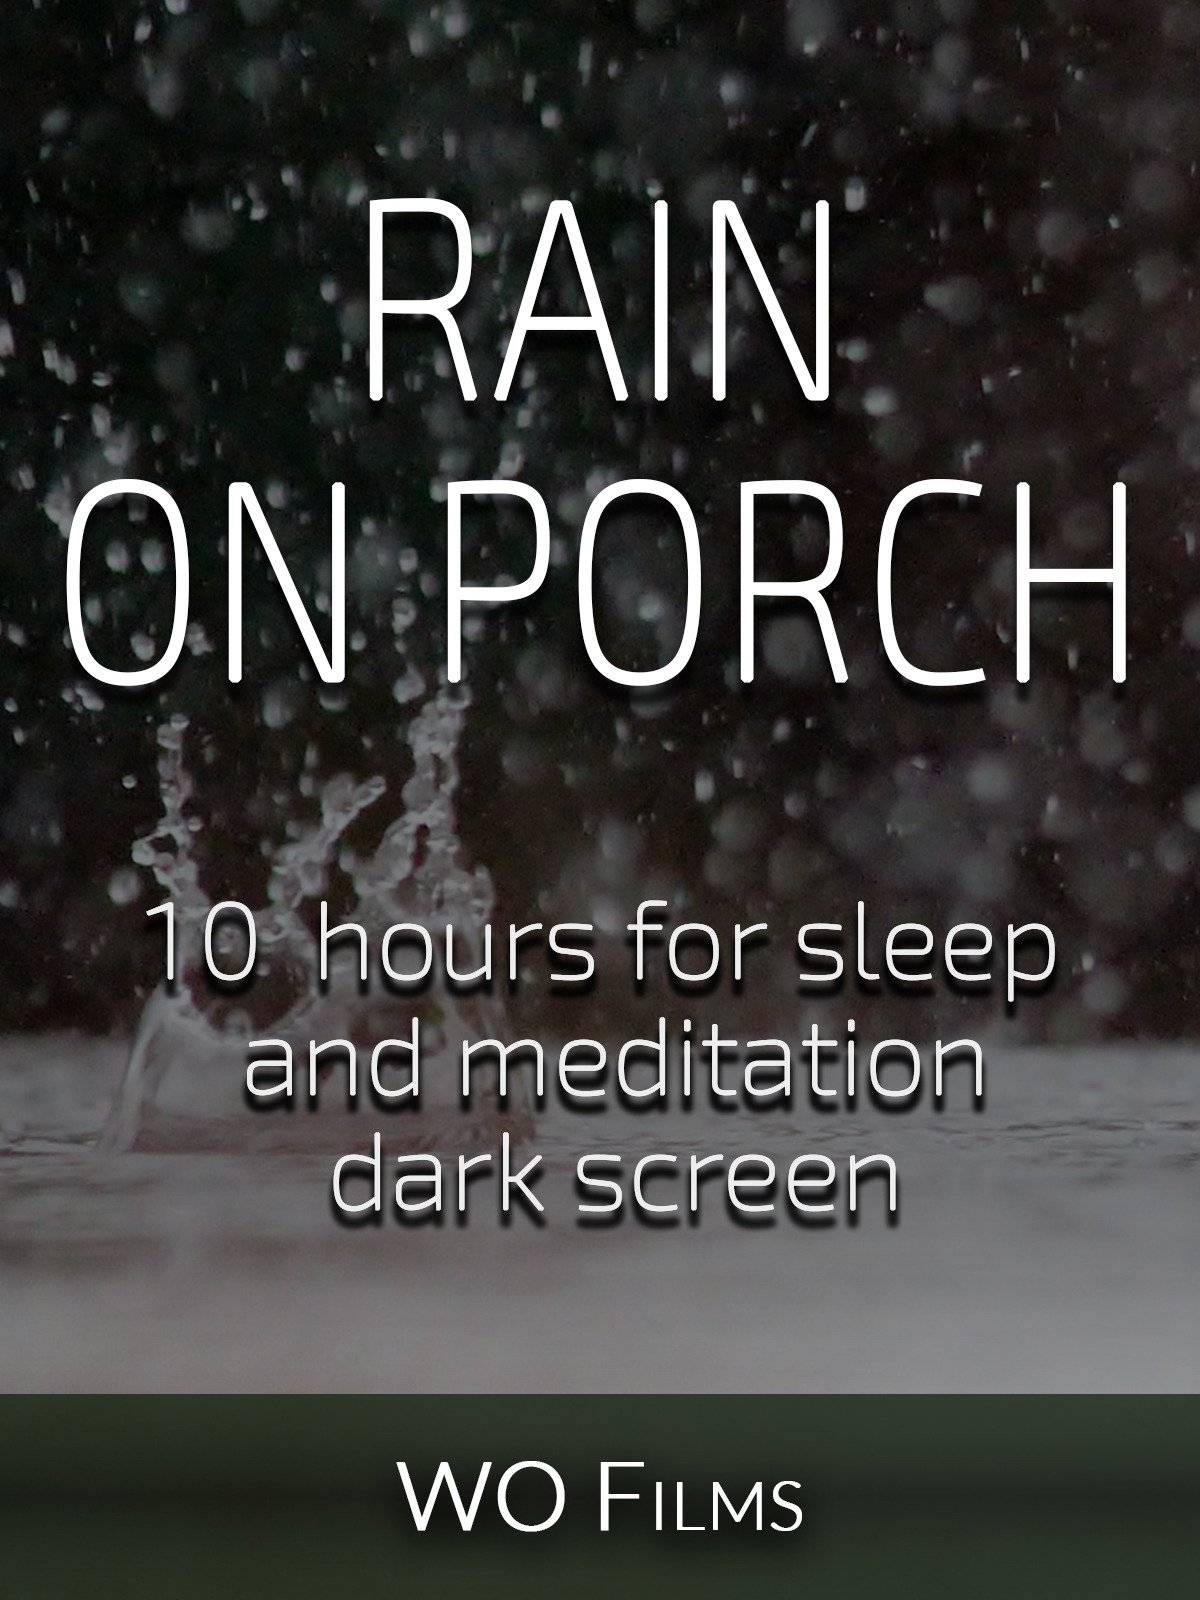 Rain on porch, 10 hours for Sleep and Meditation, dark screen